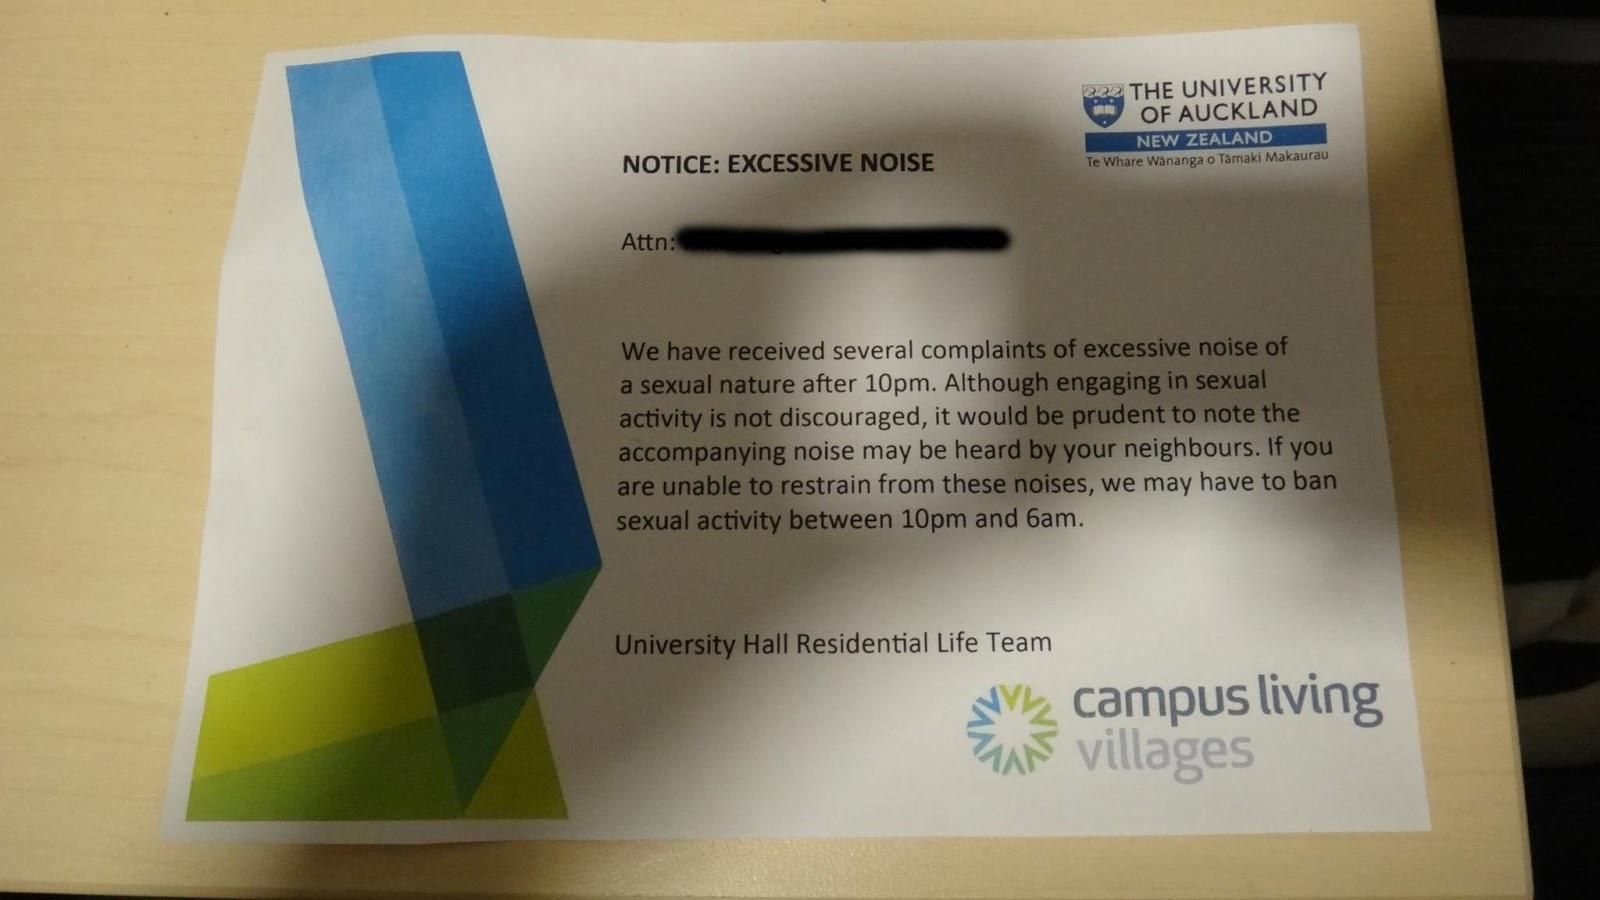 Excessive noise of a sexual nature - University of Auckland